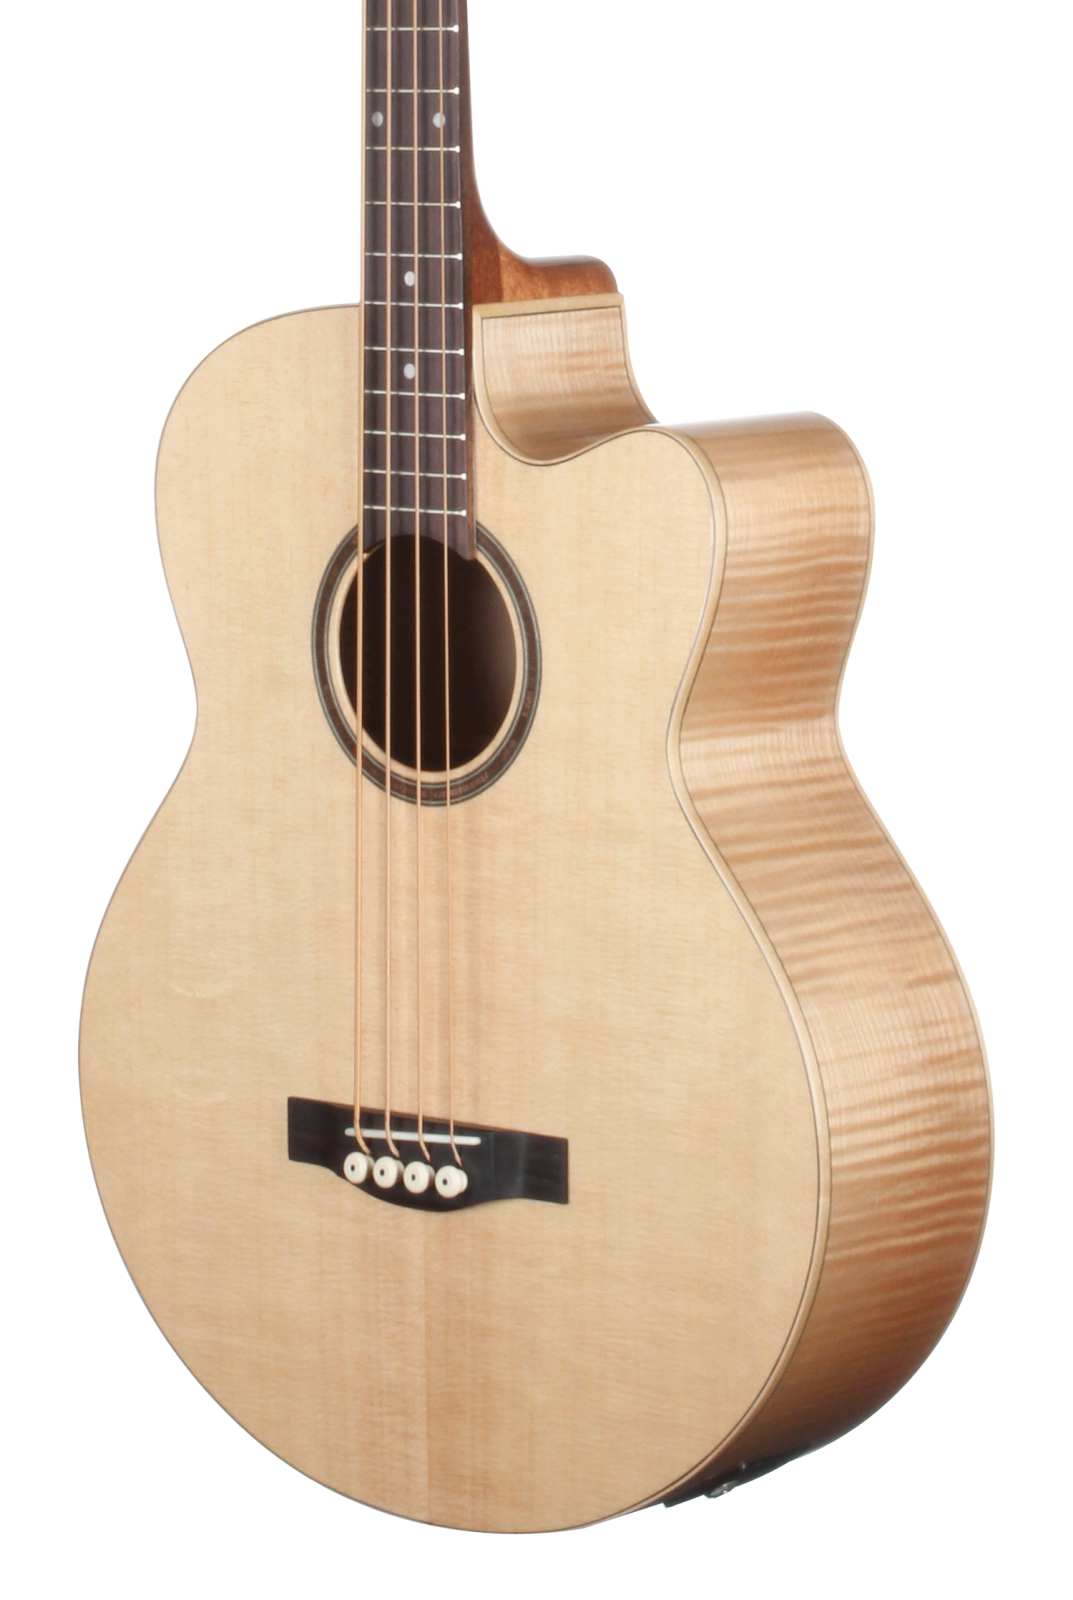 Teton - STB130FMCENT Bass - Acoustic/Electric